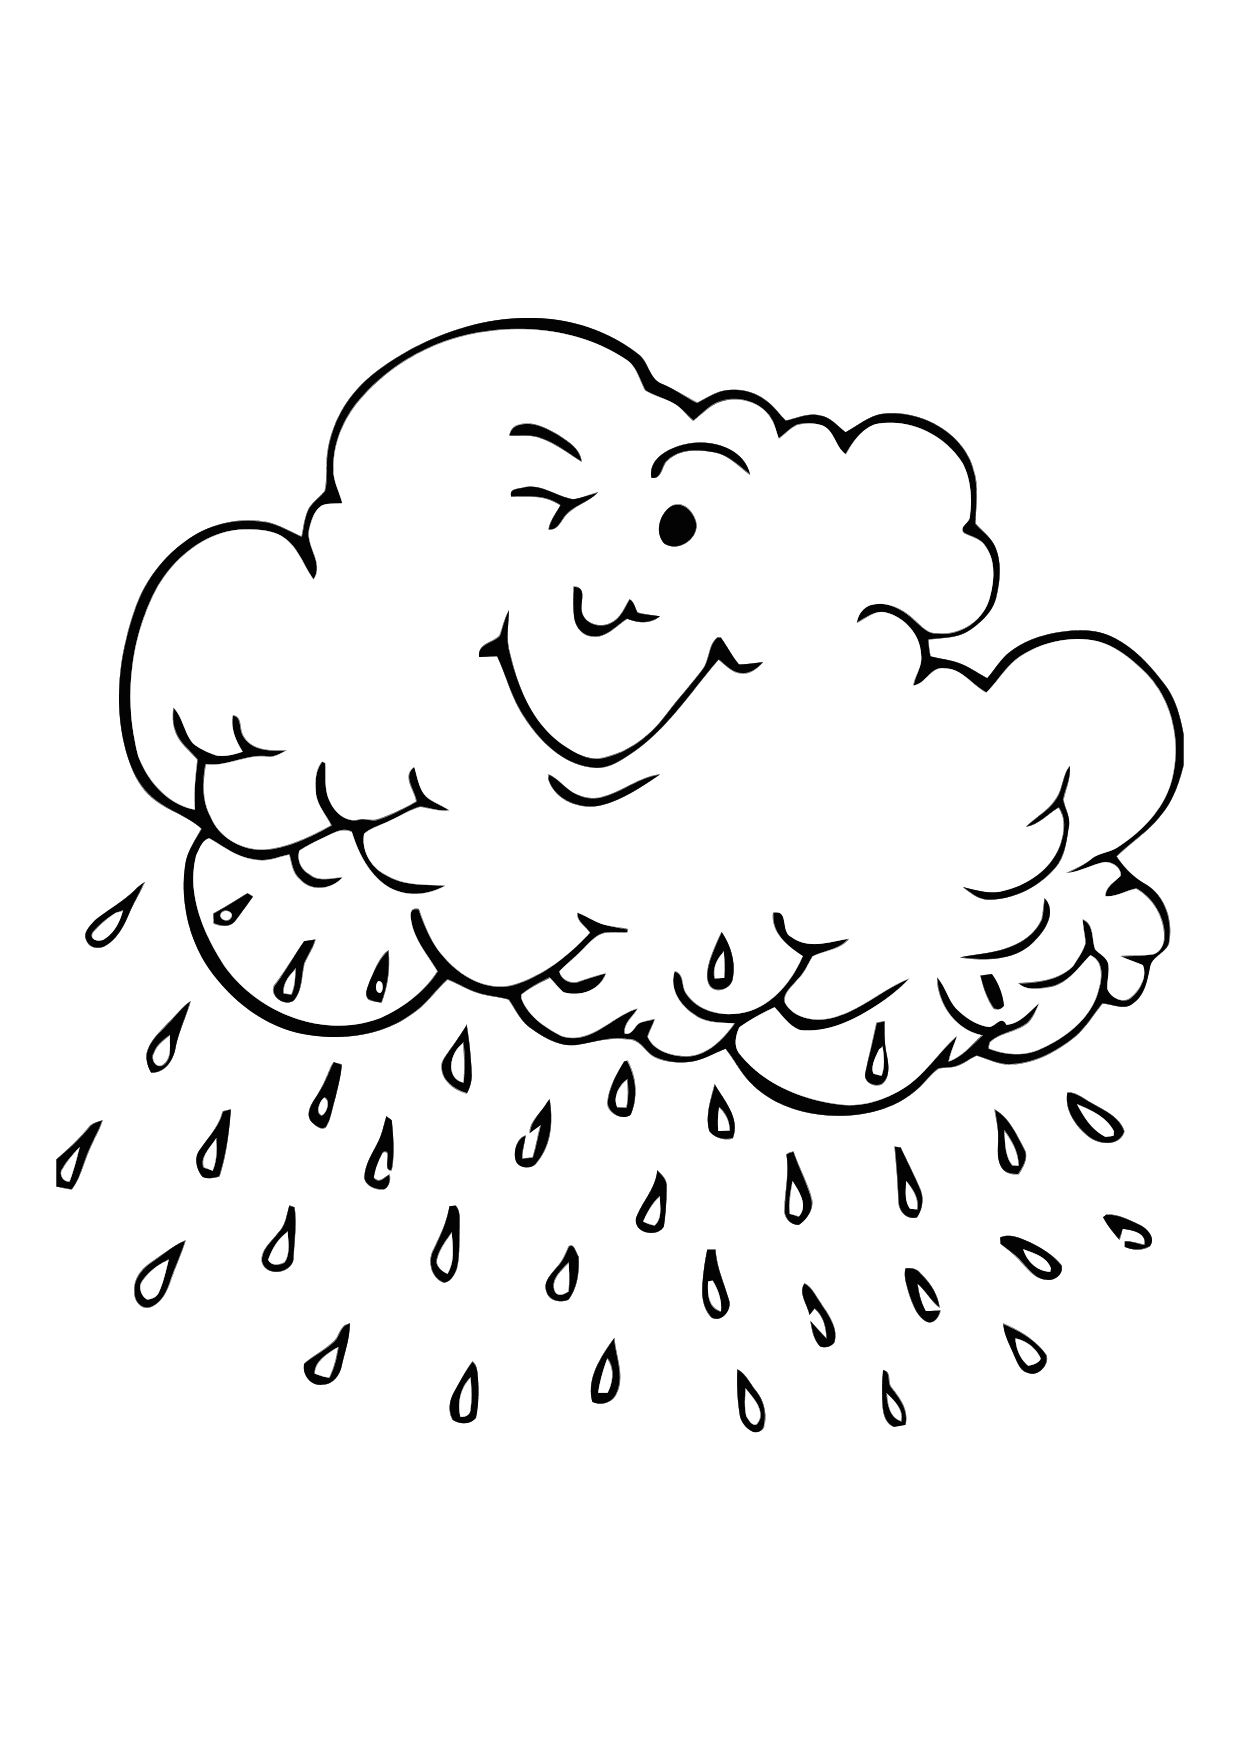 Free Printable Cloud Coloring Pages For Kids